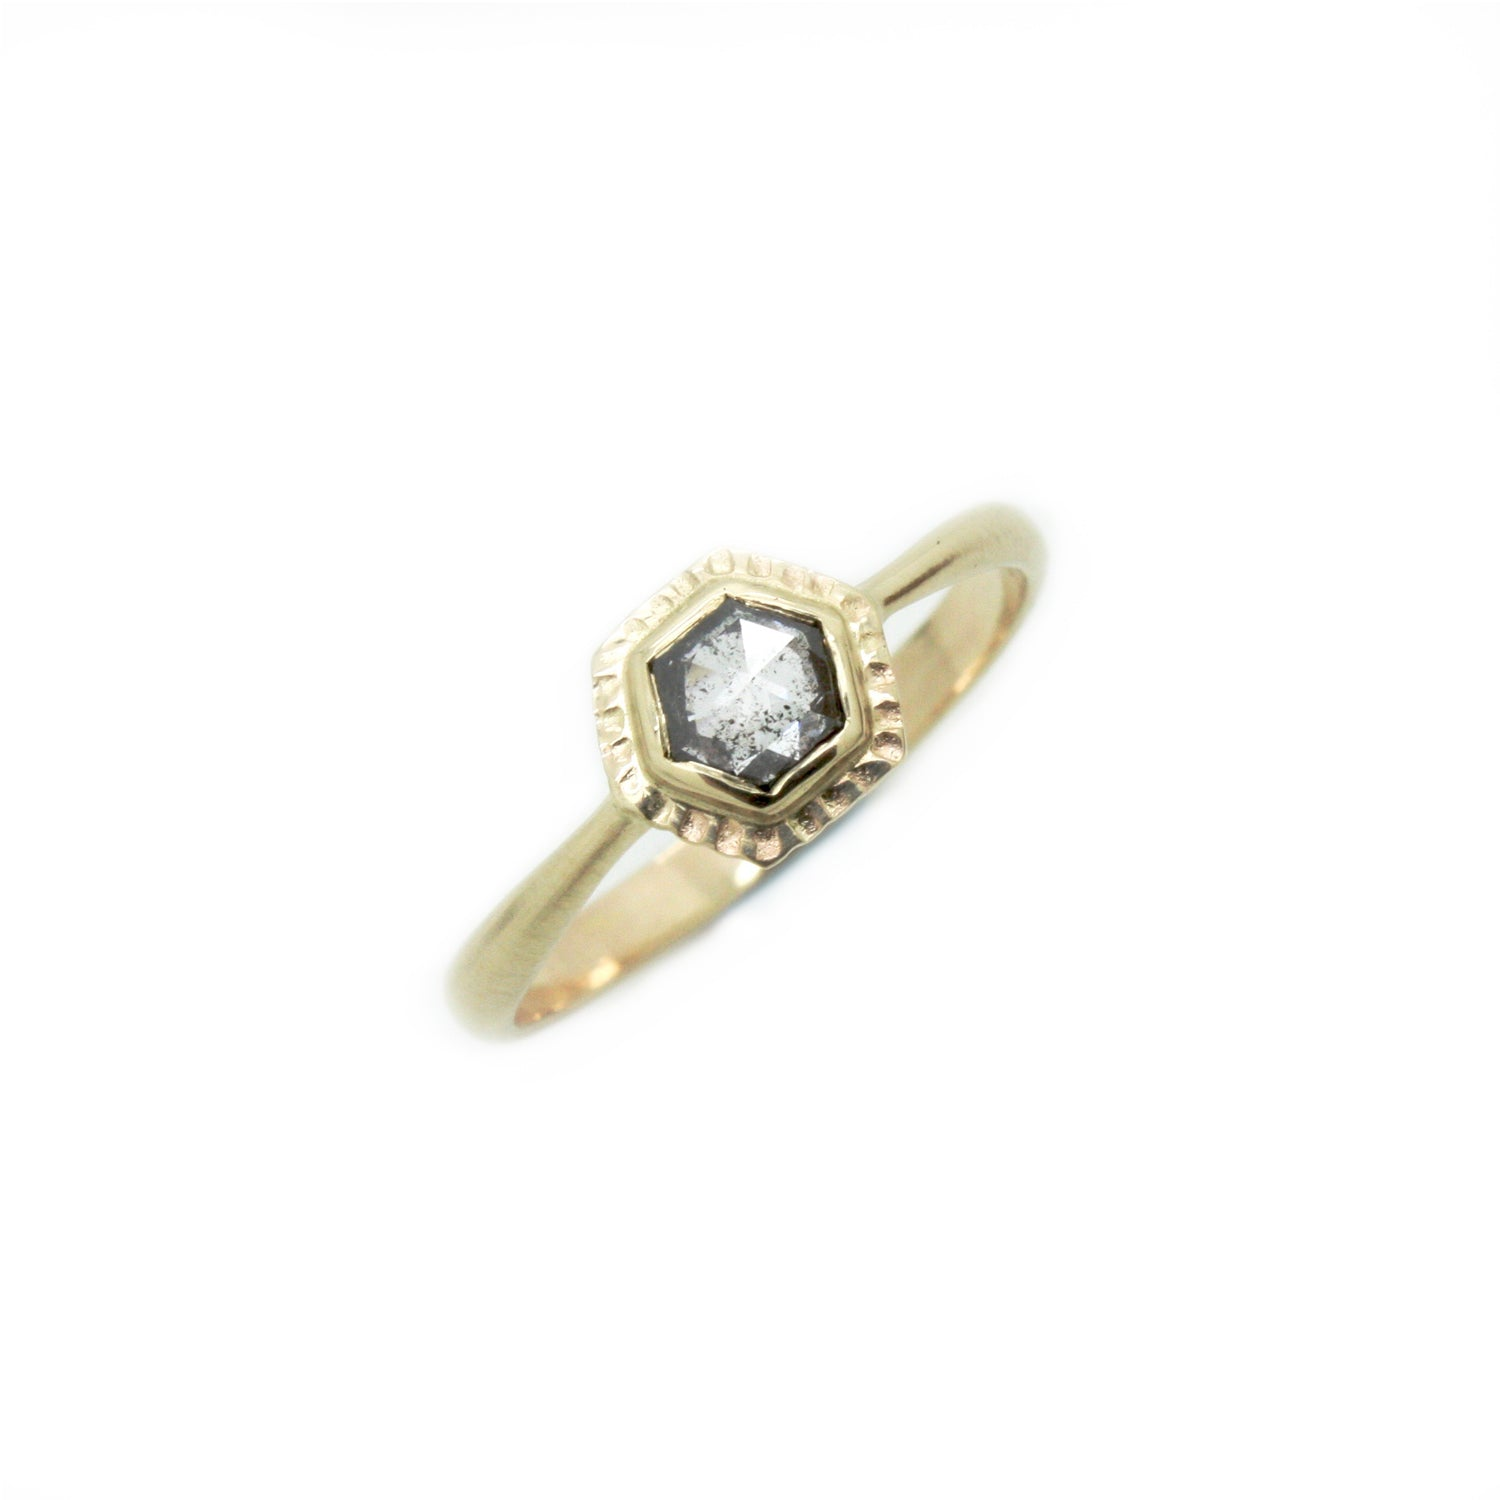 Hexagonal Sunburst Salt&Pepper Diamond Ring | Size 6.5